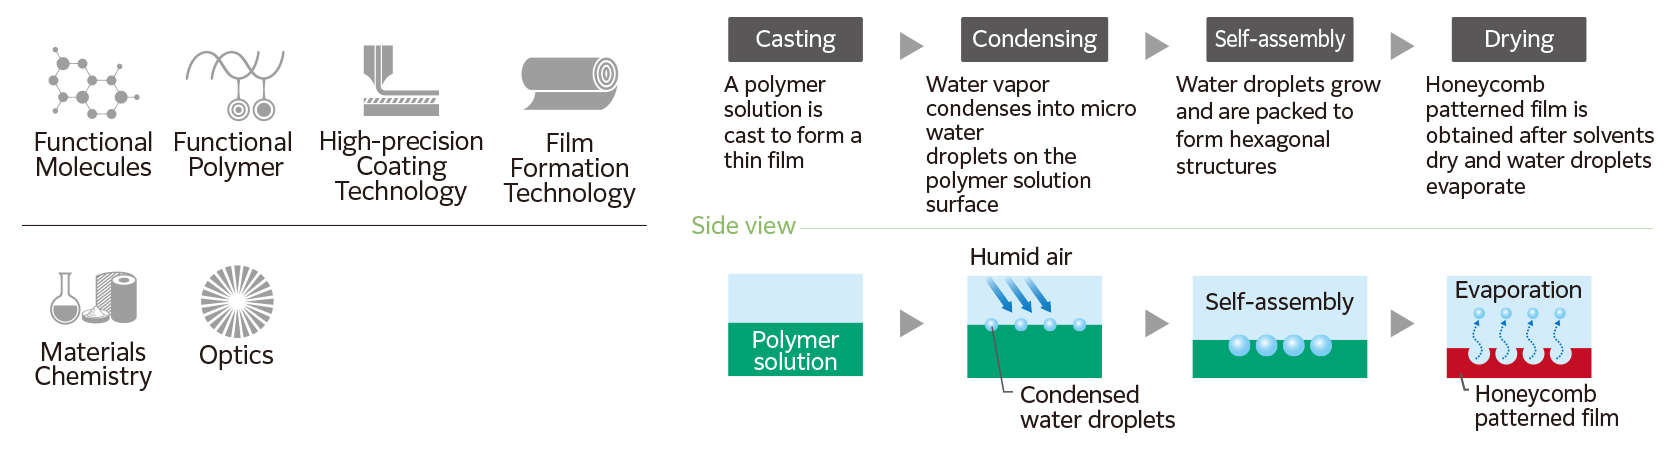 Functional Molecules Functional Polymer High-precision Coating Technology Film Formation Technology Materials Chemistry